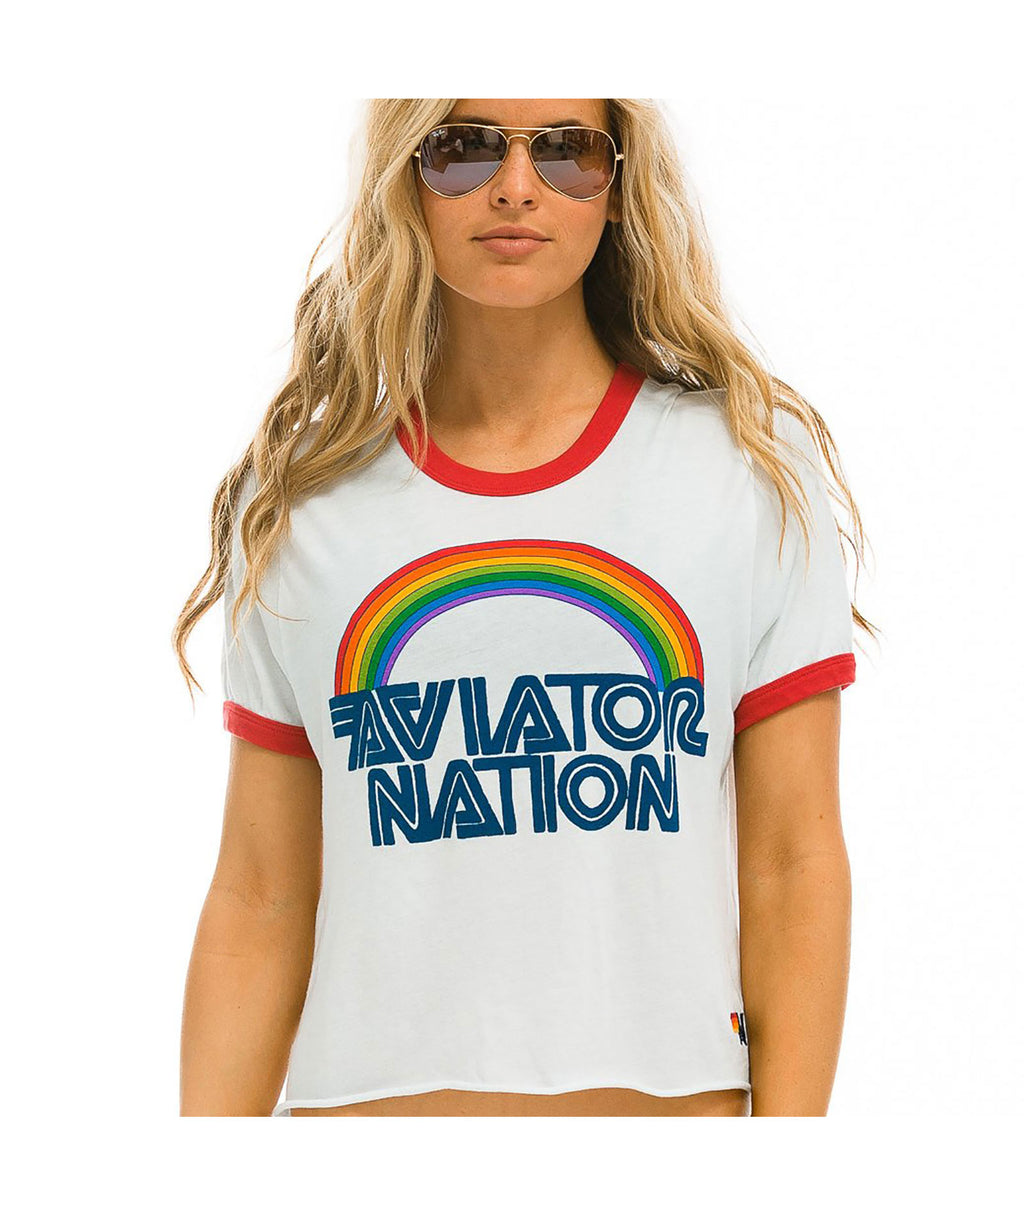 Aviator Nation Women White & Red Ringer Tee